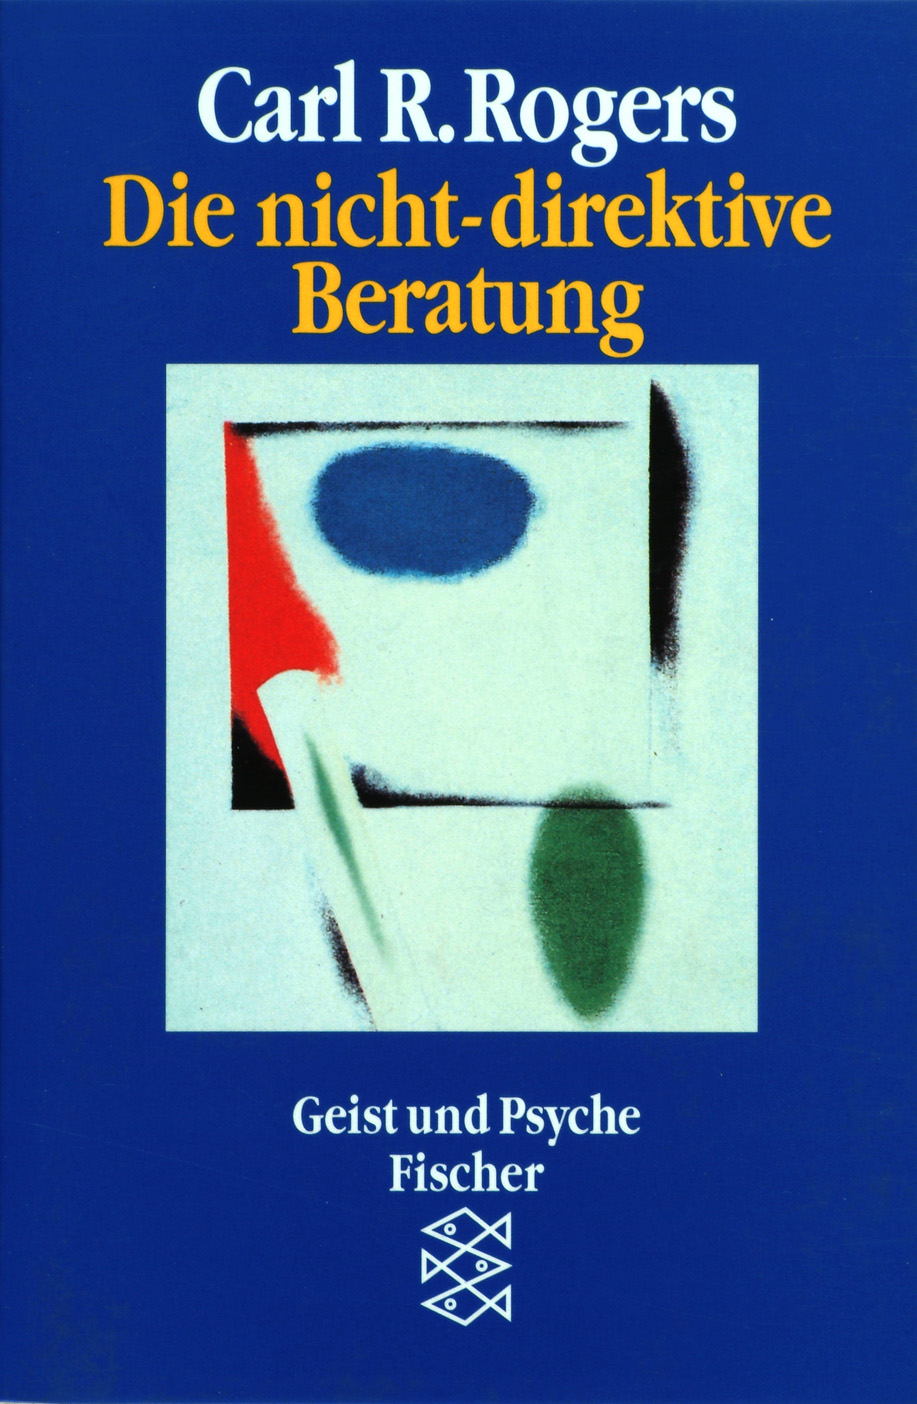 Die nicht-direktive Beratung: Counseling and Psychotherapy - Carl R. Rogers